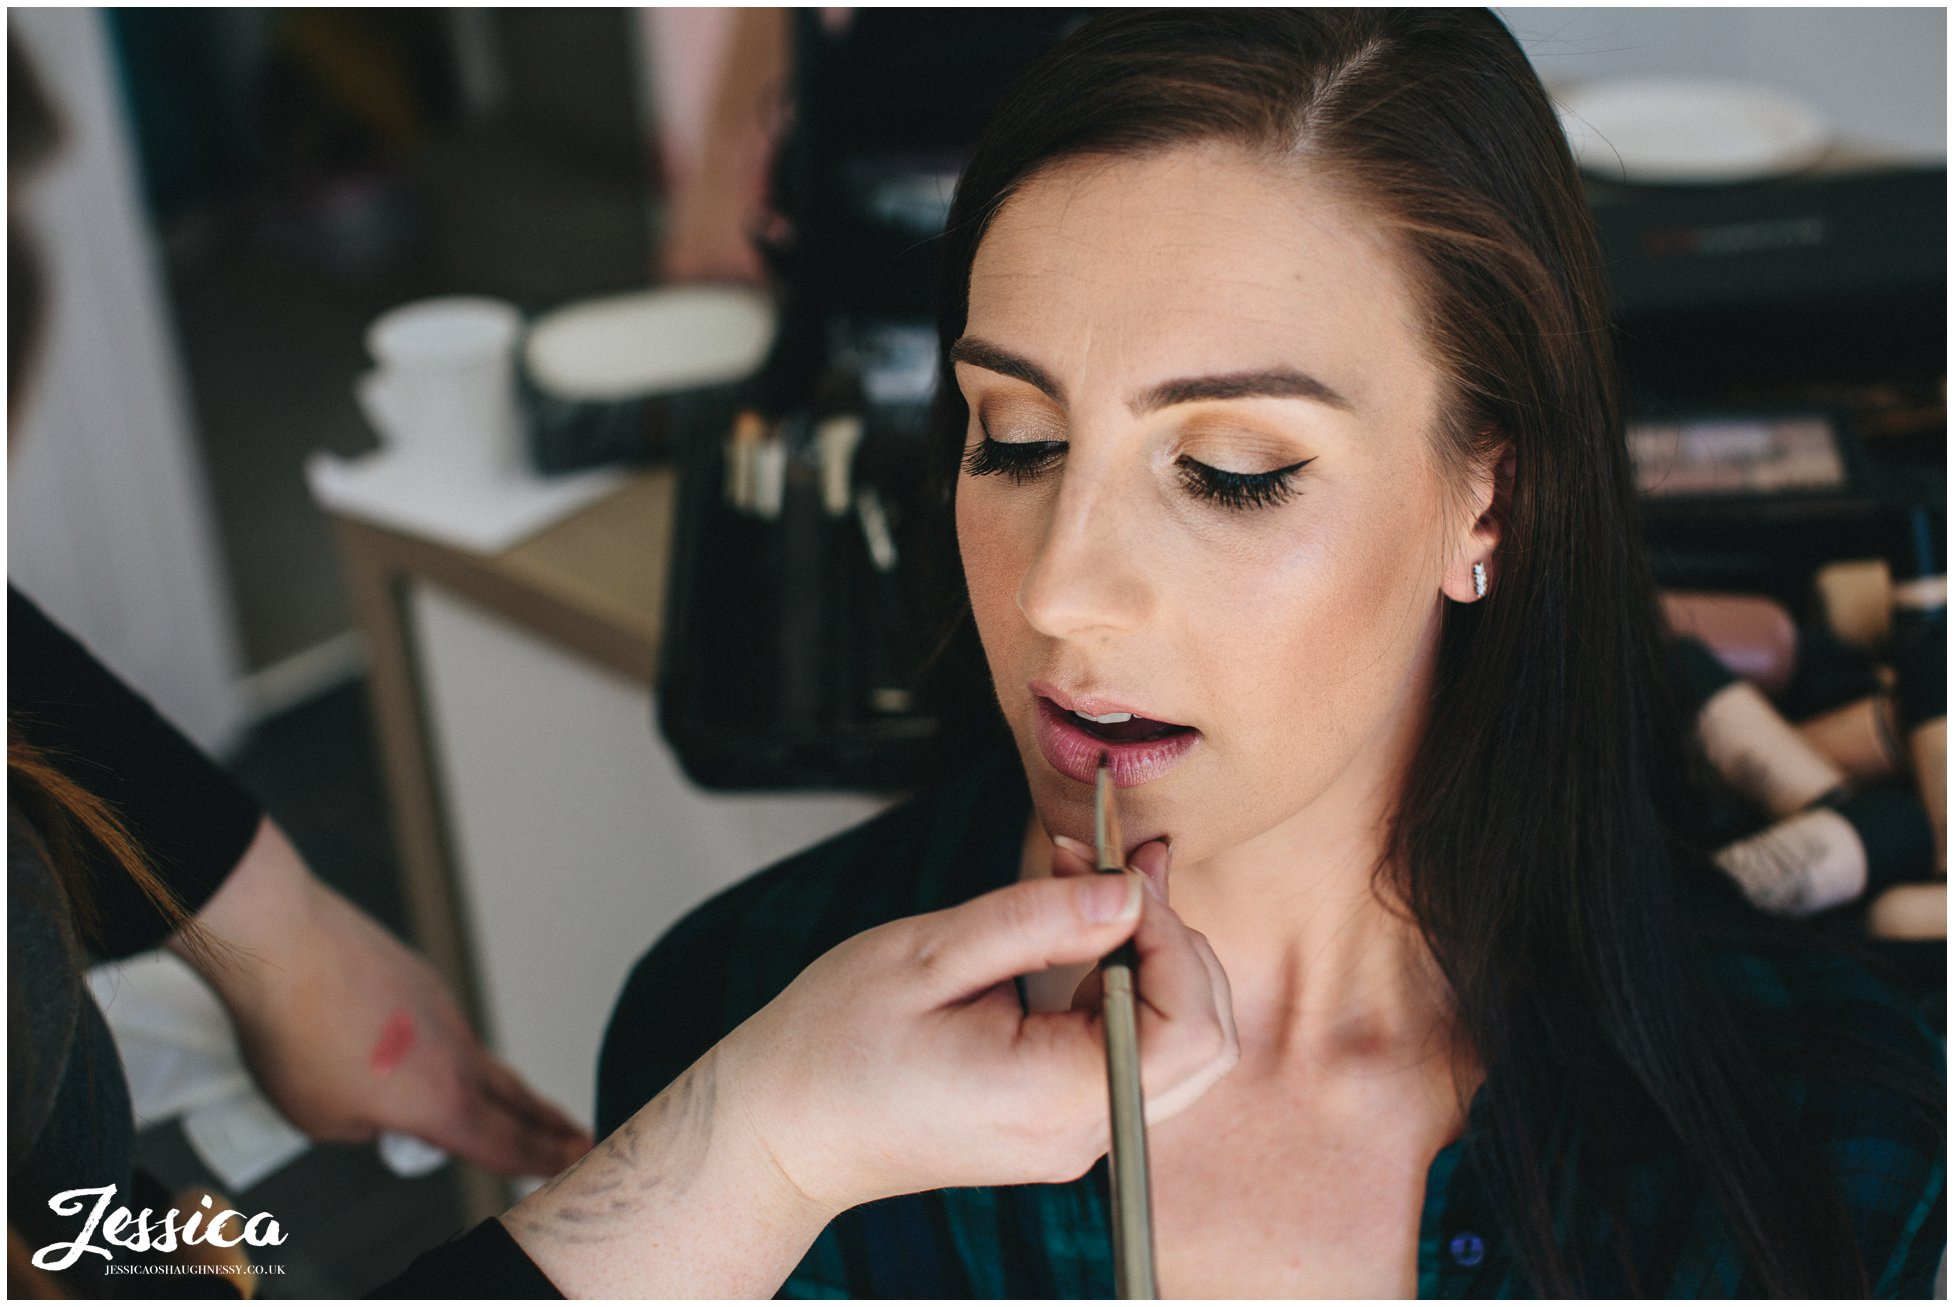 The bride having lipstick applied for her wedding day